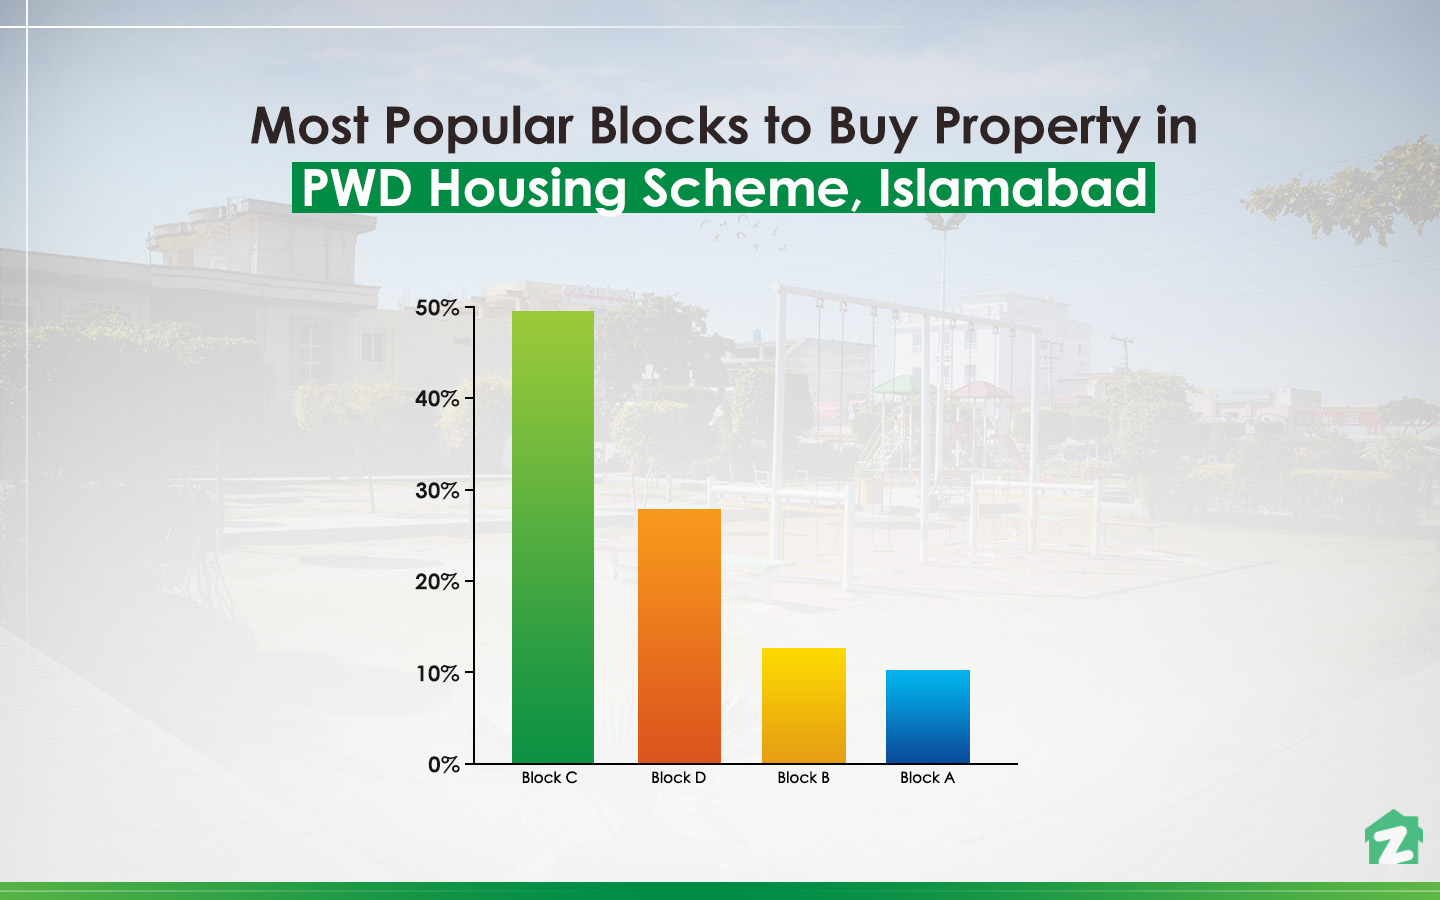 Popular blocks for buying property in PWD Housing Scheme, Islamabad